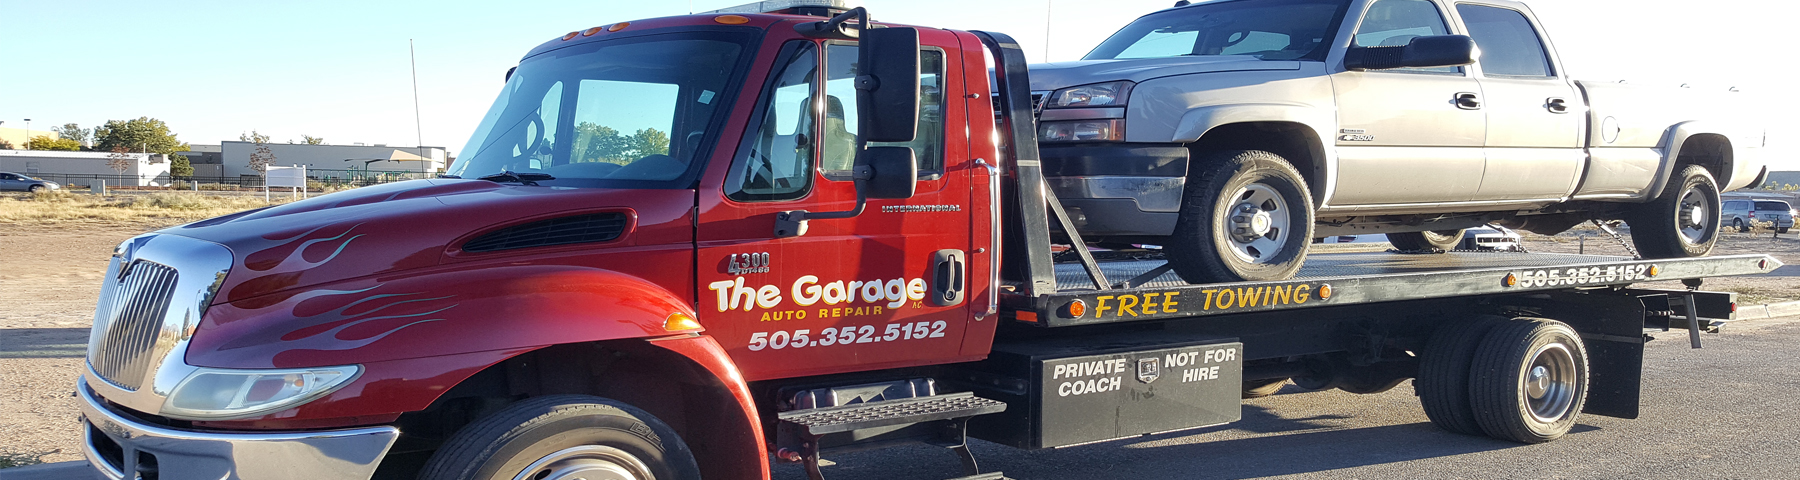 The Garage Expert Auto Repair Albuquerque Nm 87120 Wiring Diagram Ricks Free Advice Estimates Contact Us Towing